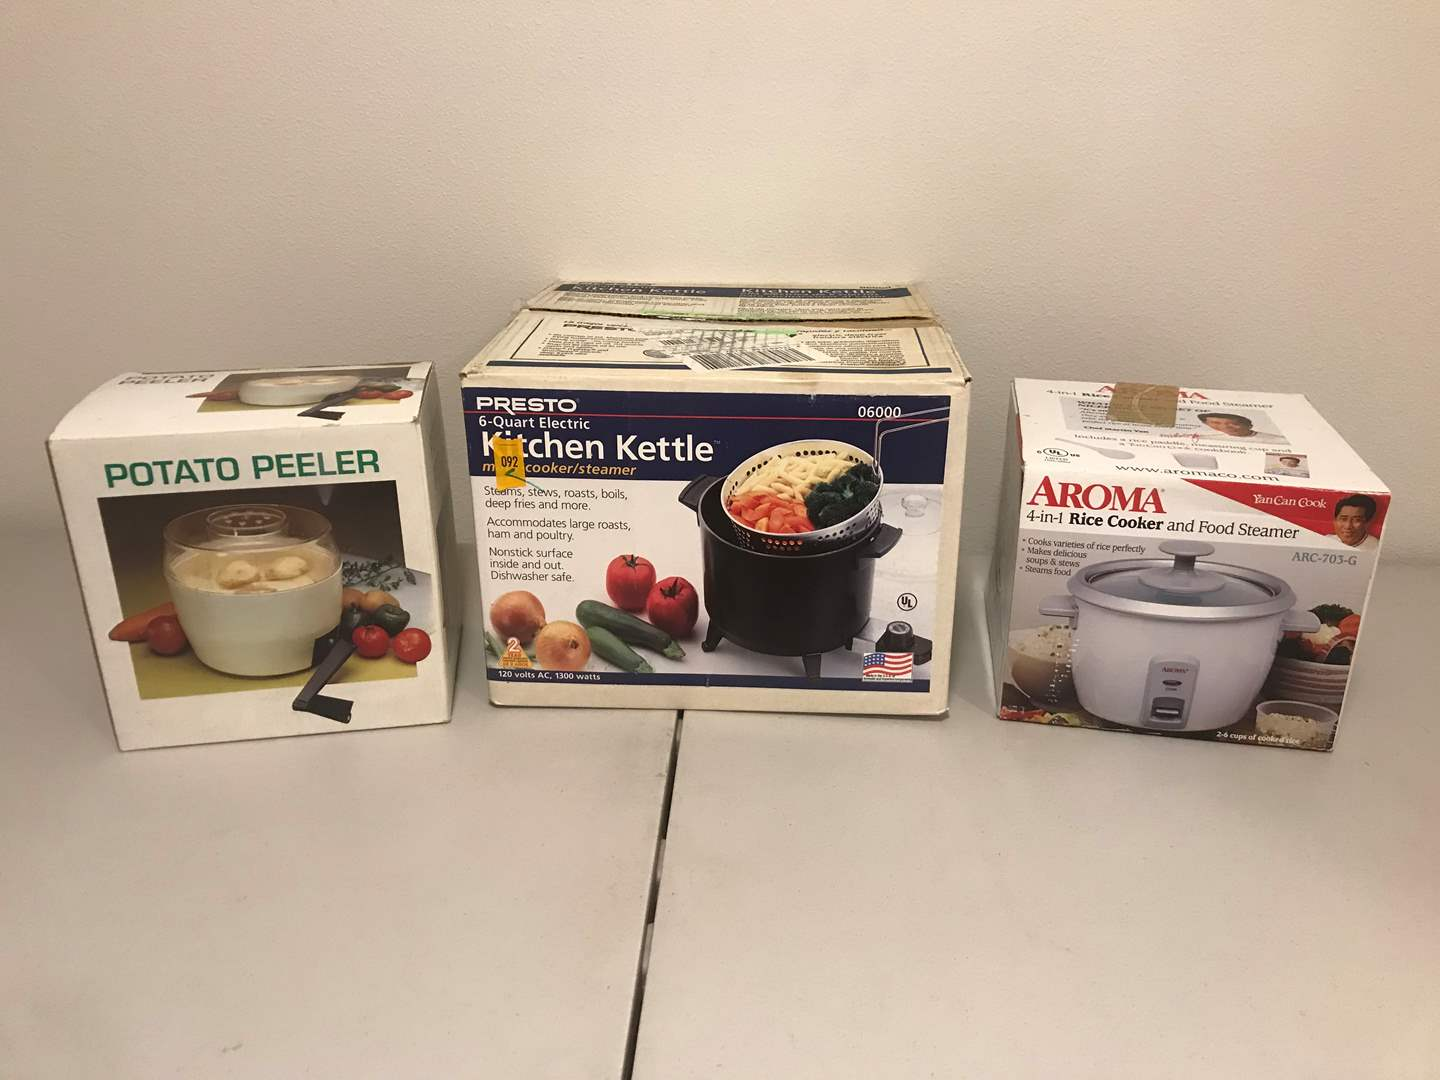 Lot # 280 - New in Box Items: Aroma 4-in-1 Rice Cooker, Presto 6 Quart Kitchen Kettle & Potato Peeler (main image)